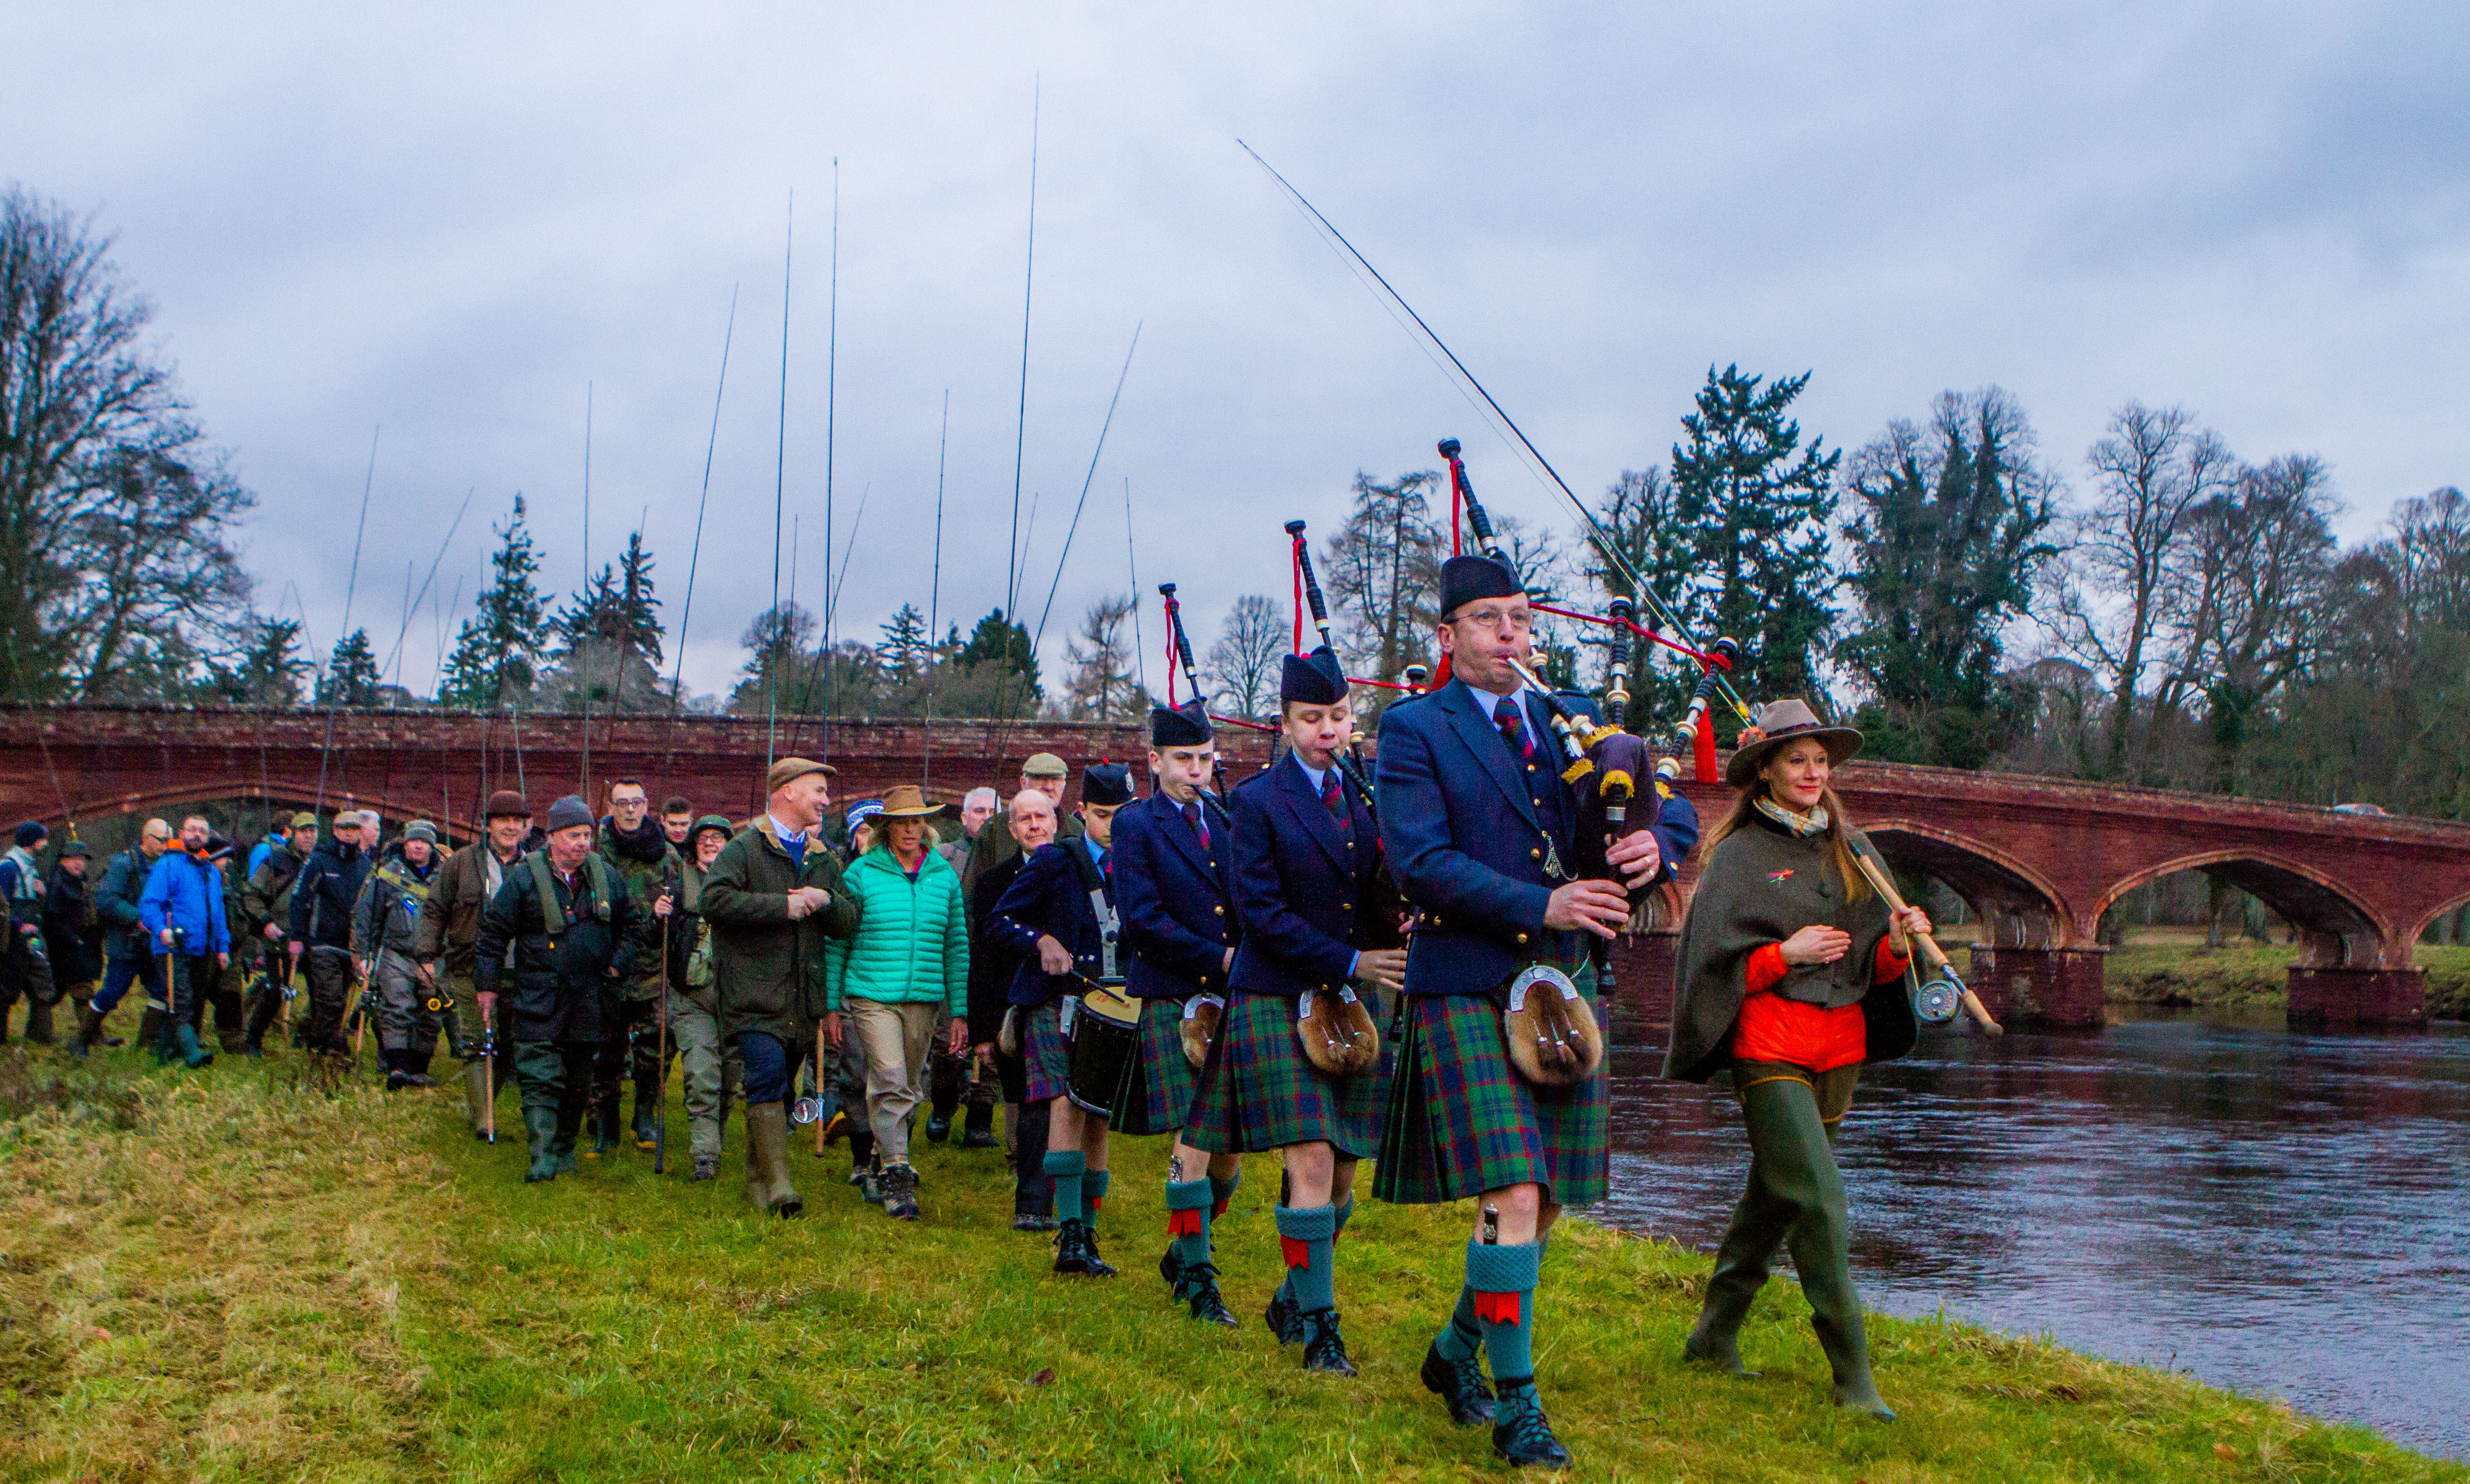 The parade before the opening led by Perth and District pipe band Pipe Major Alistair Duthie and Claire Mercer Nairne (of Meikleour Fishing). Meikleour Fishing, Kinclaven Bridge, by Meikleour.